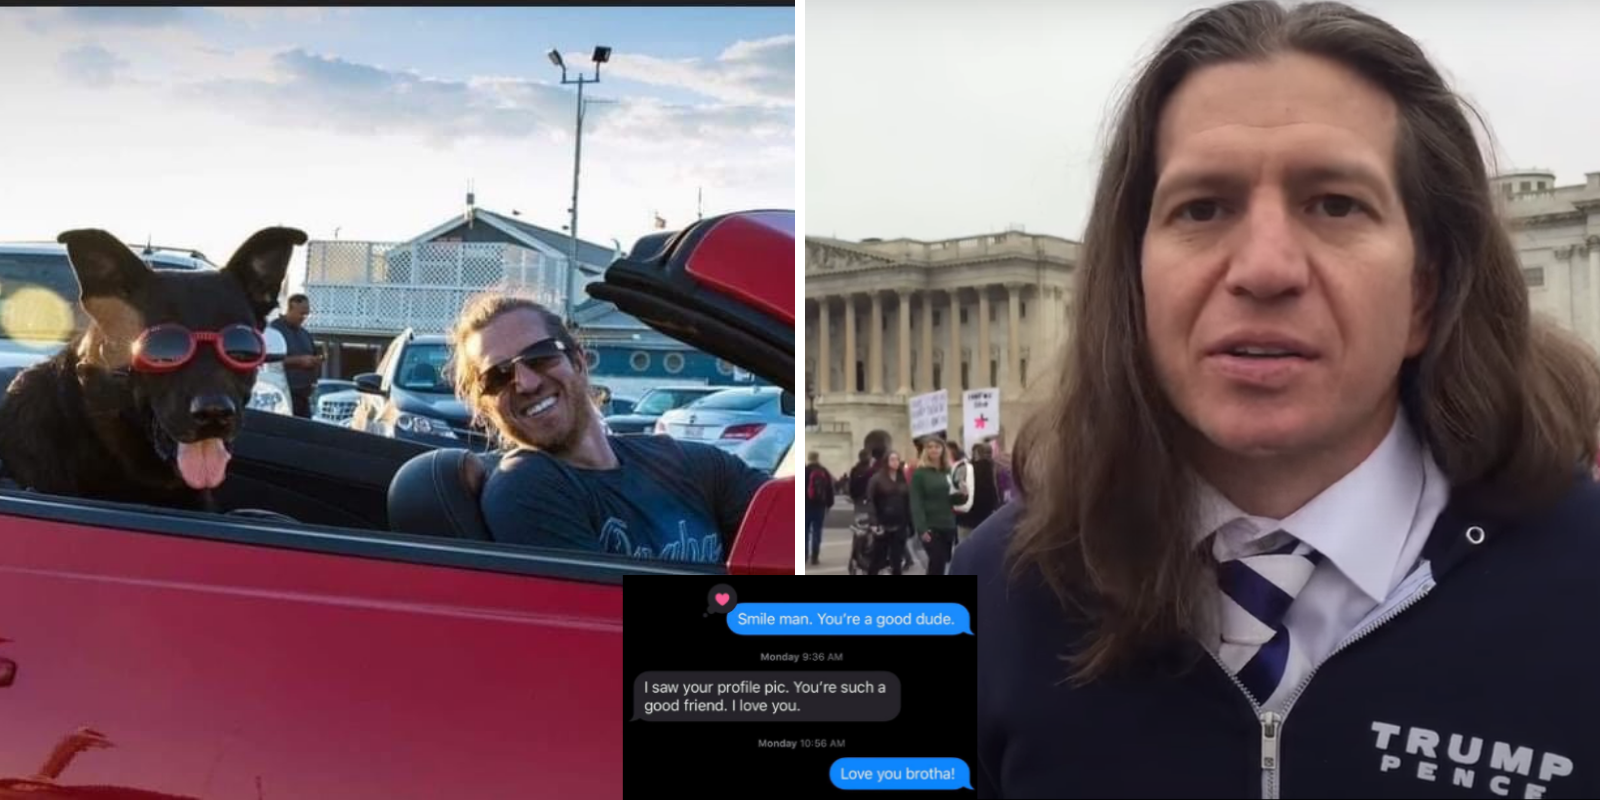 EXCLUSIVE: Friend of Jake Gardner reveals his last messages before his suicide, calls out left-wing mob who doxxed and defamed him